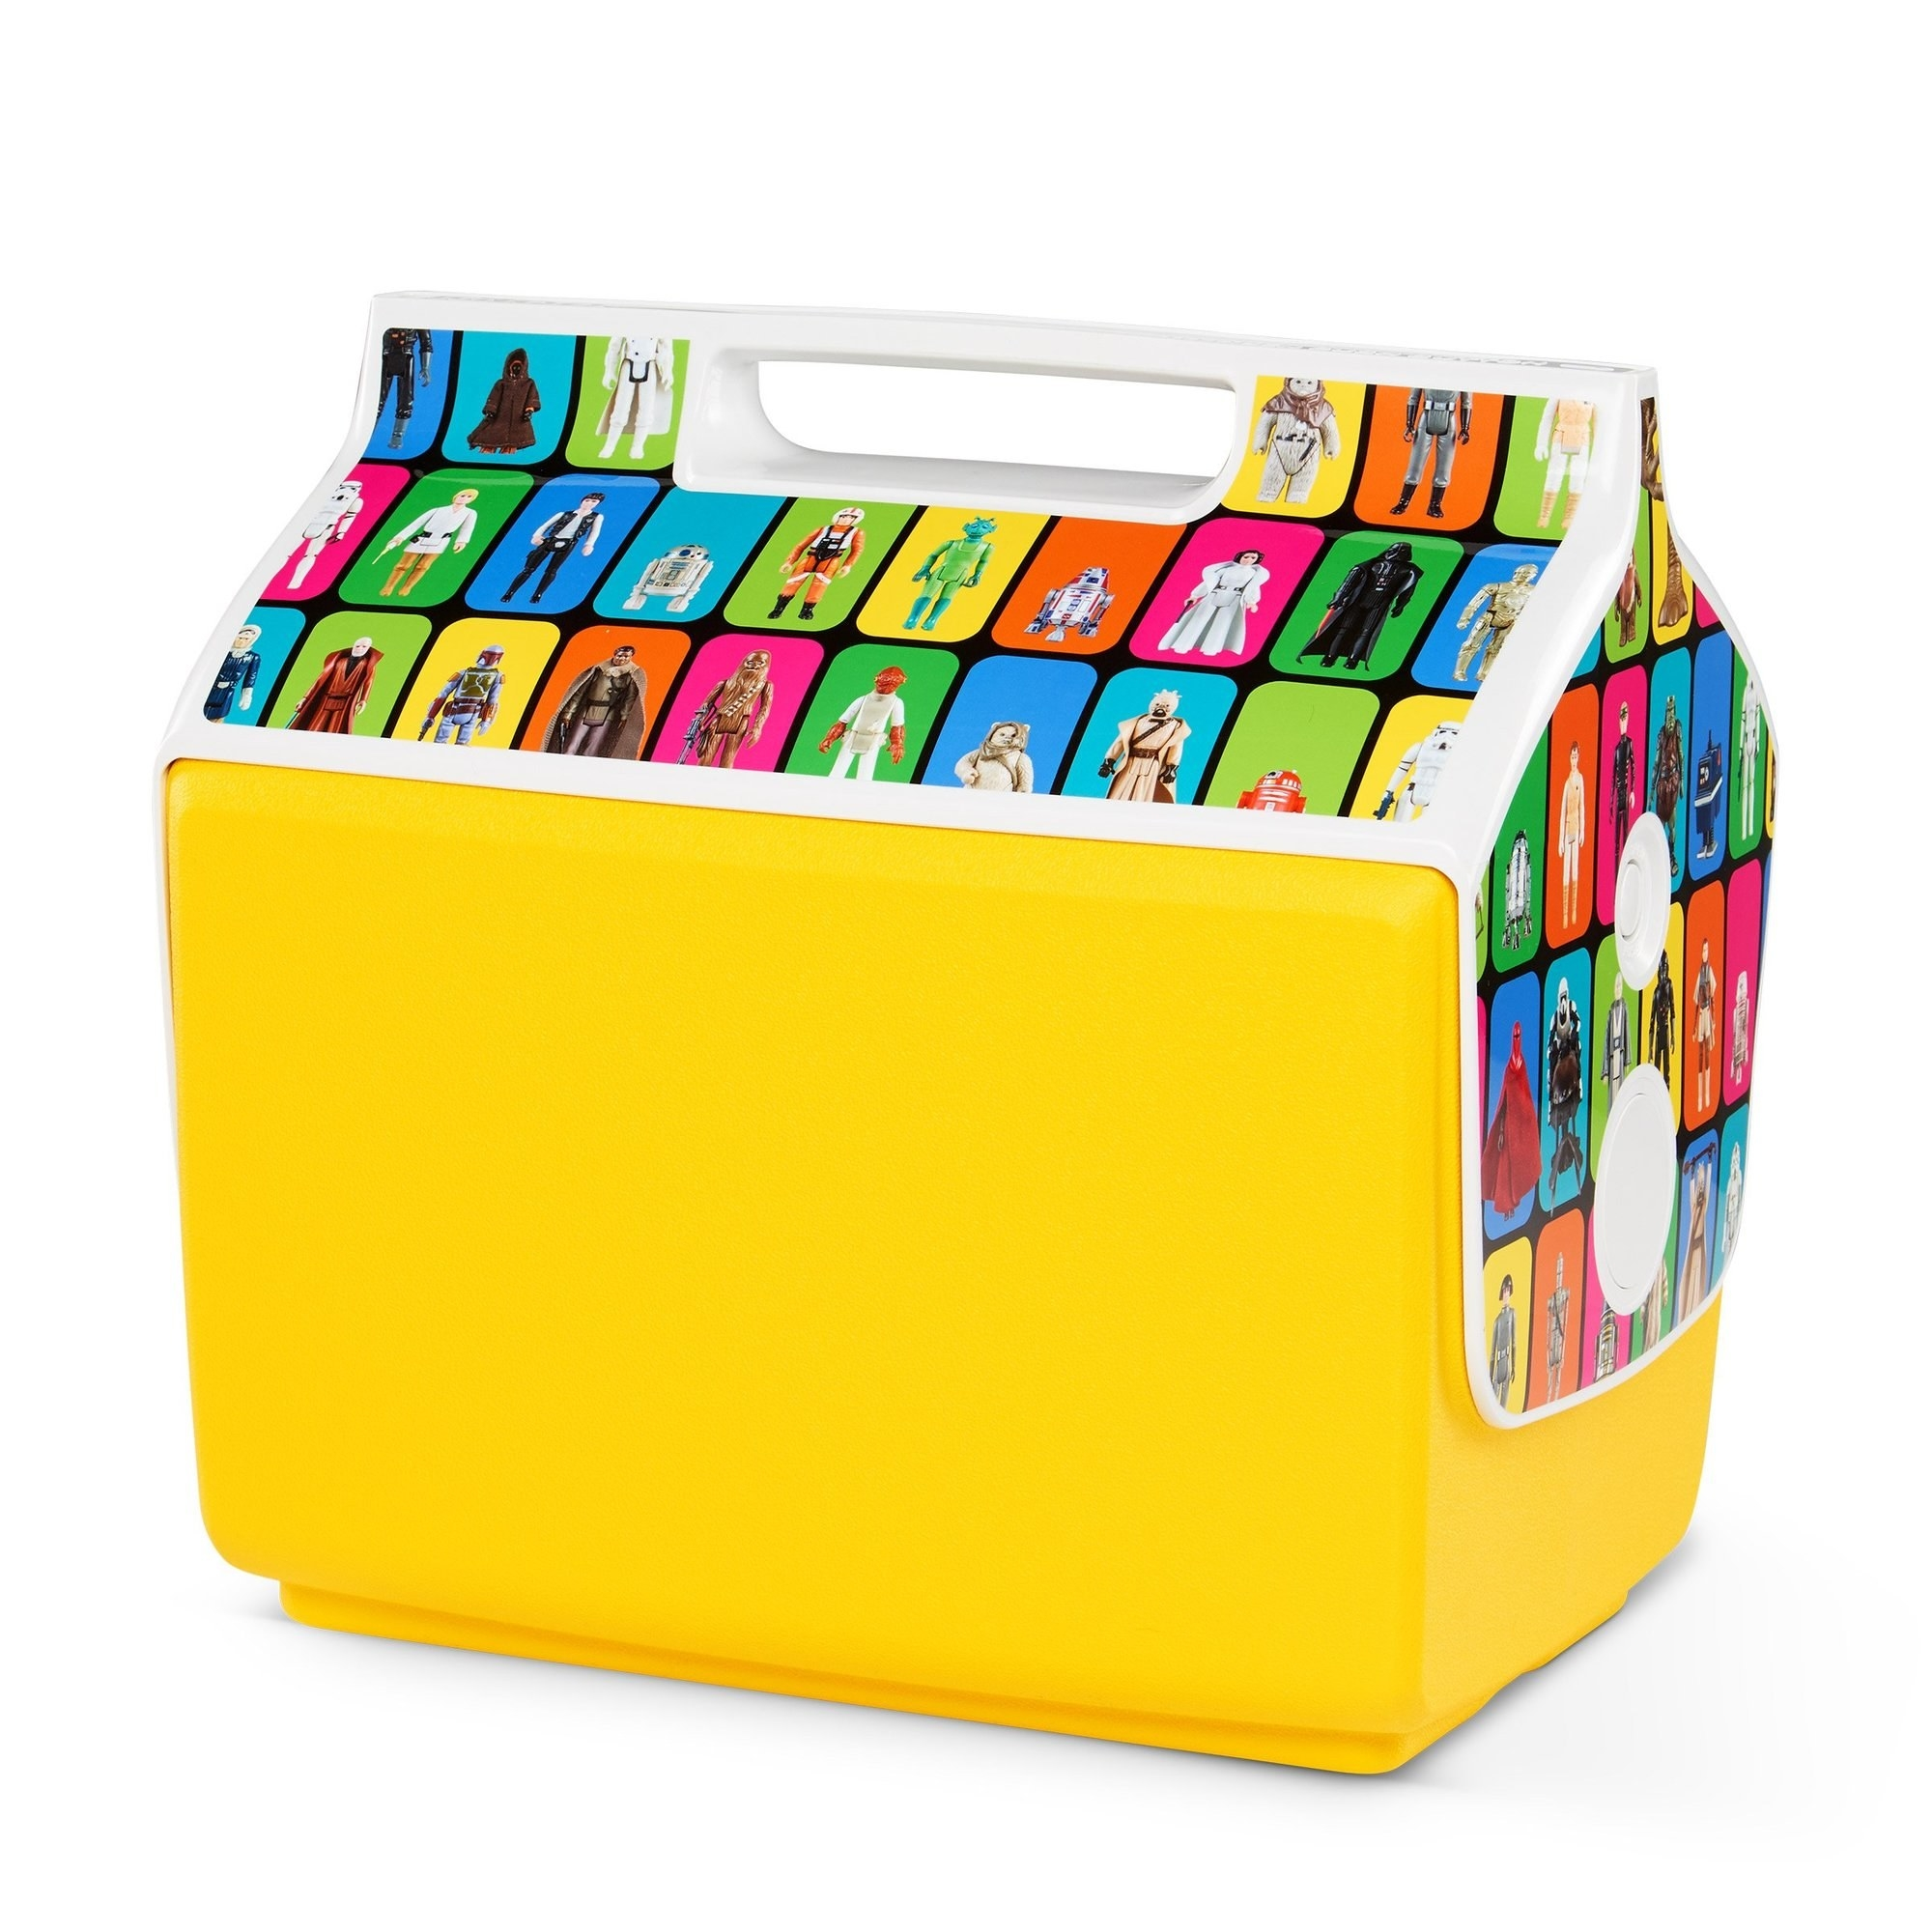 a yellow cooler with retro illustrations of star wars characters on the side